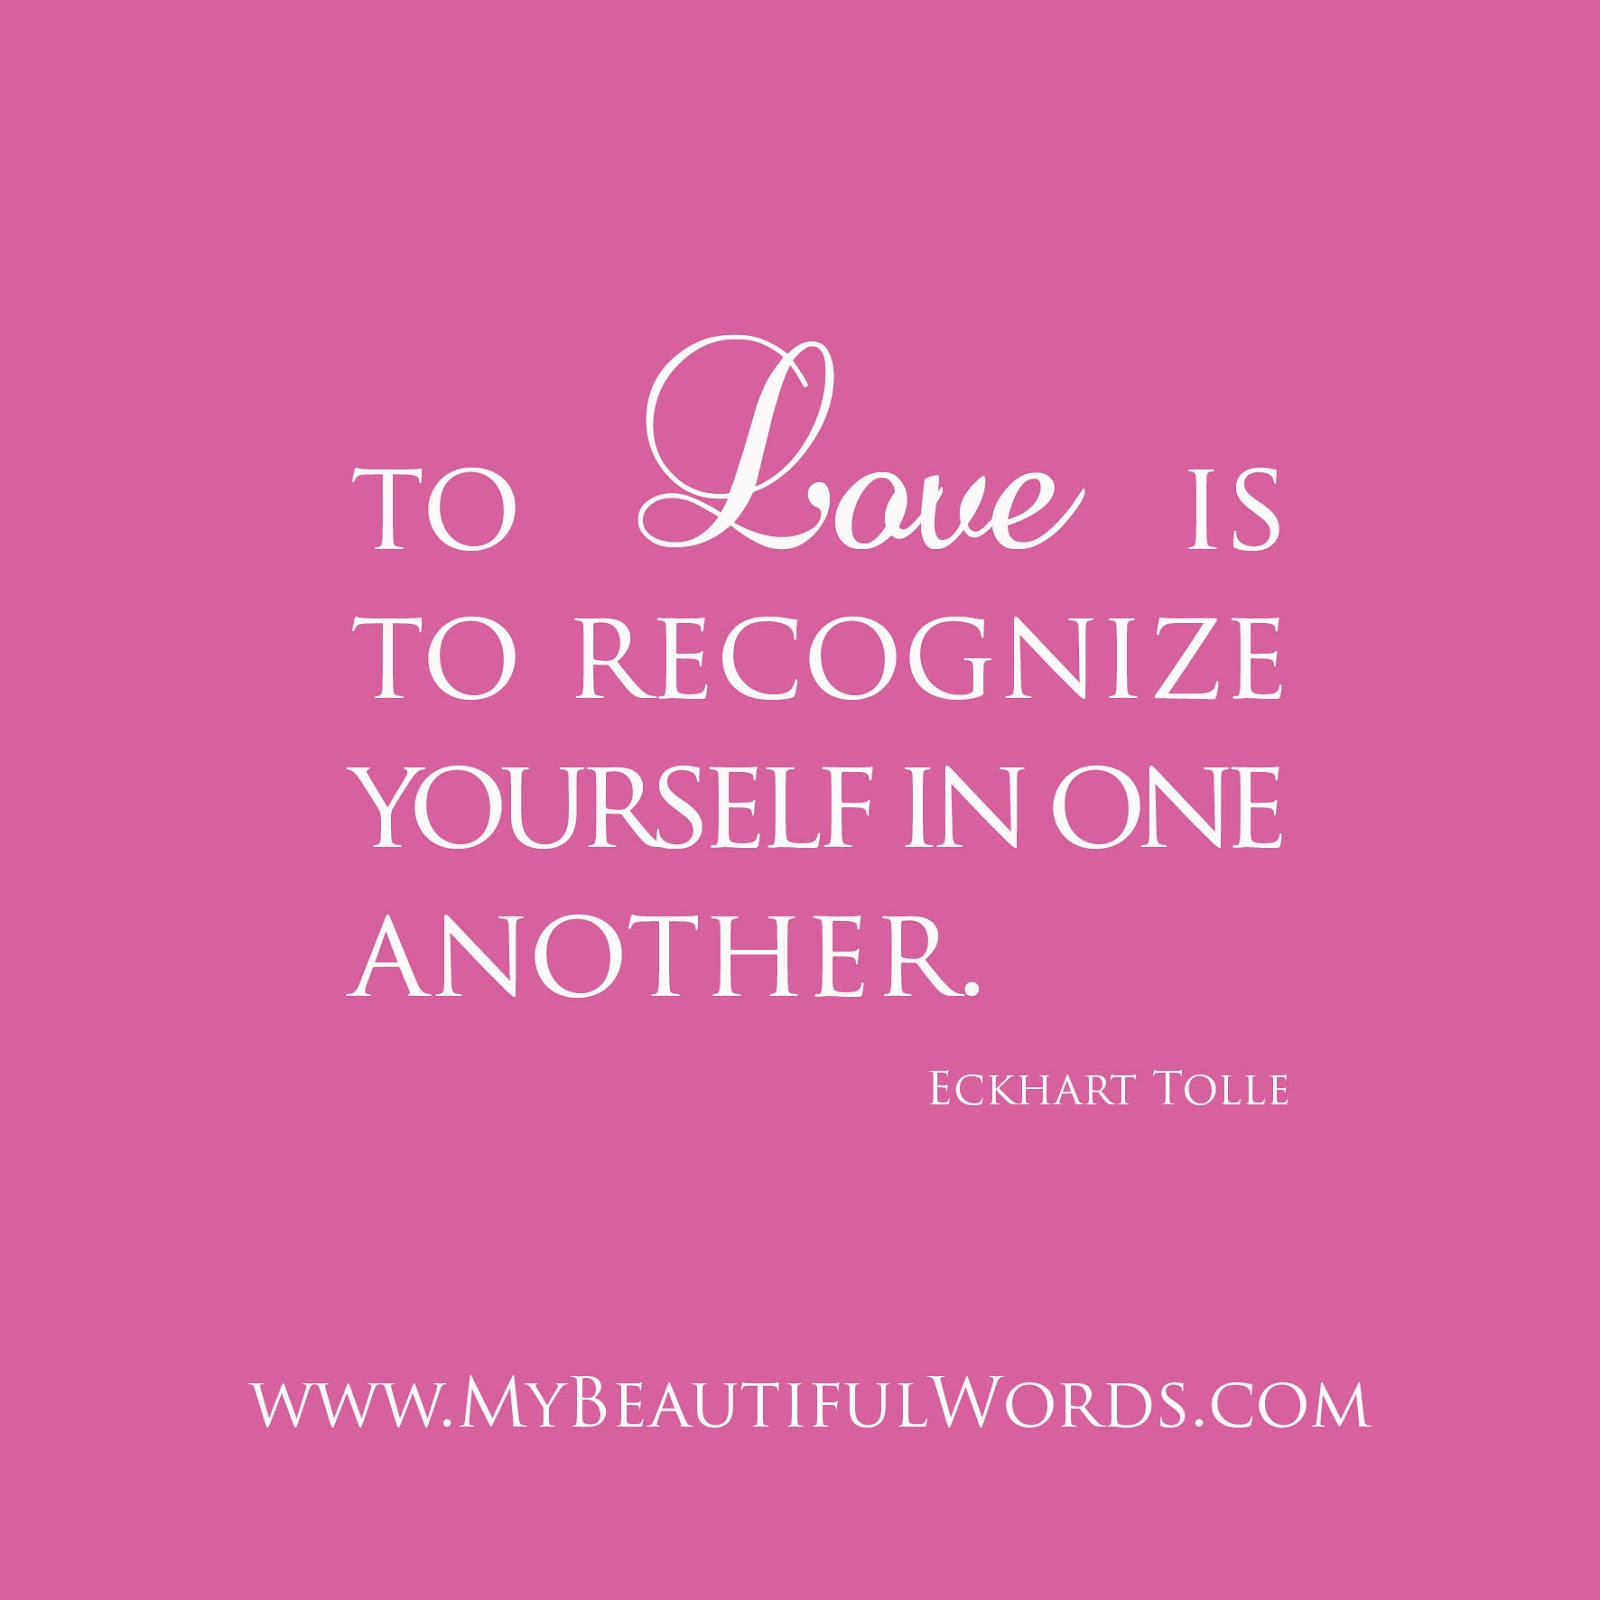 eckhart tolle quote ldquo you - photo #17